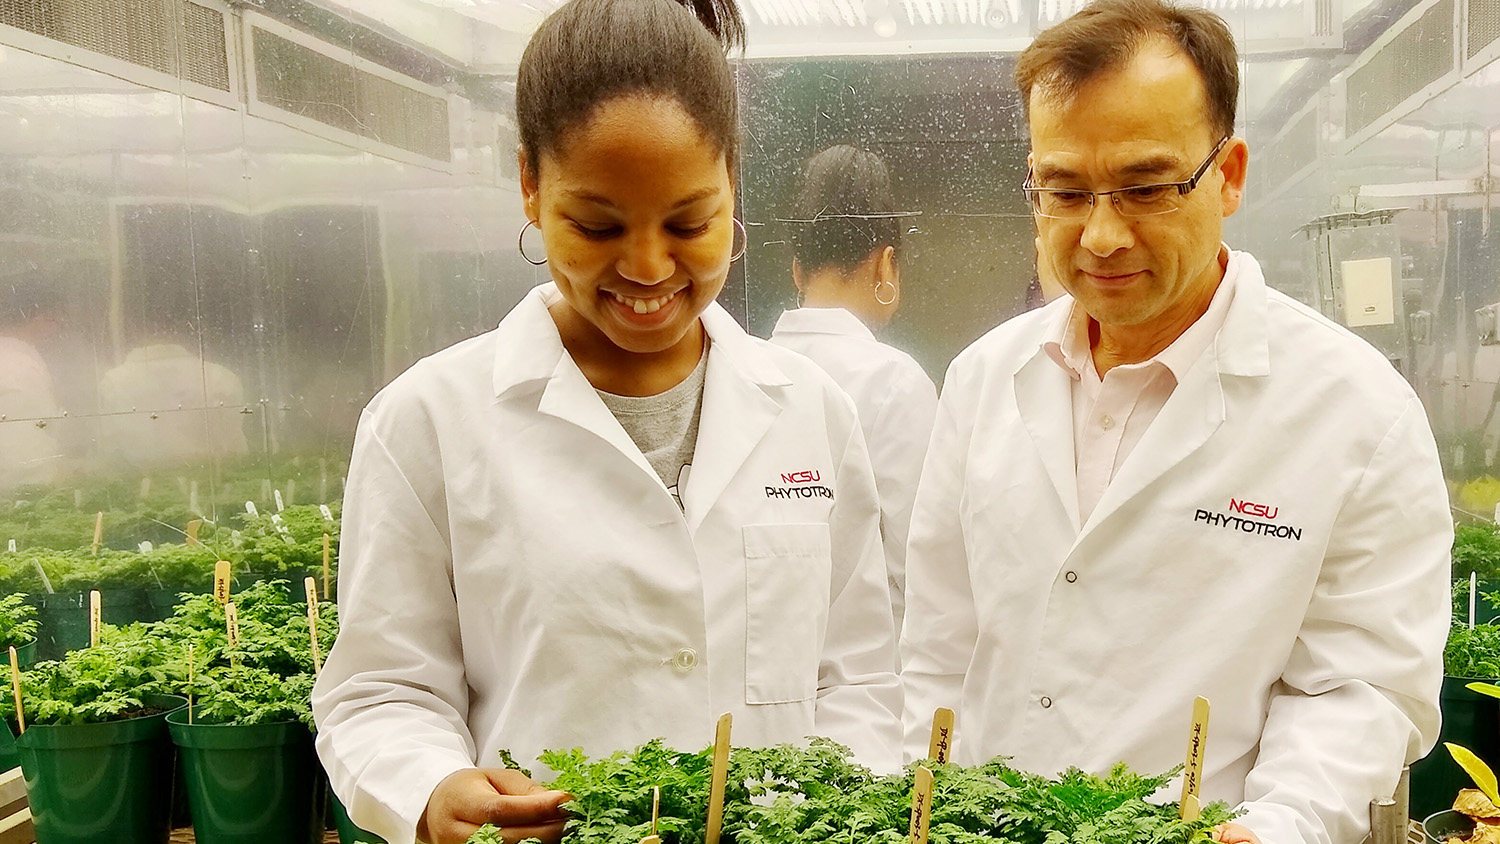 Study co-authors Rika Judd and De-Yu Xie with plants in NC State's Phytotron.